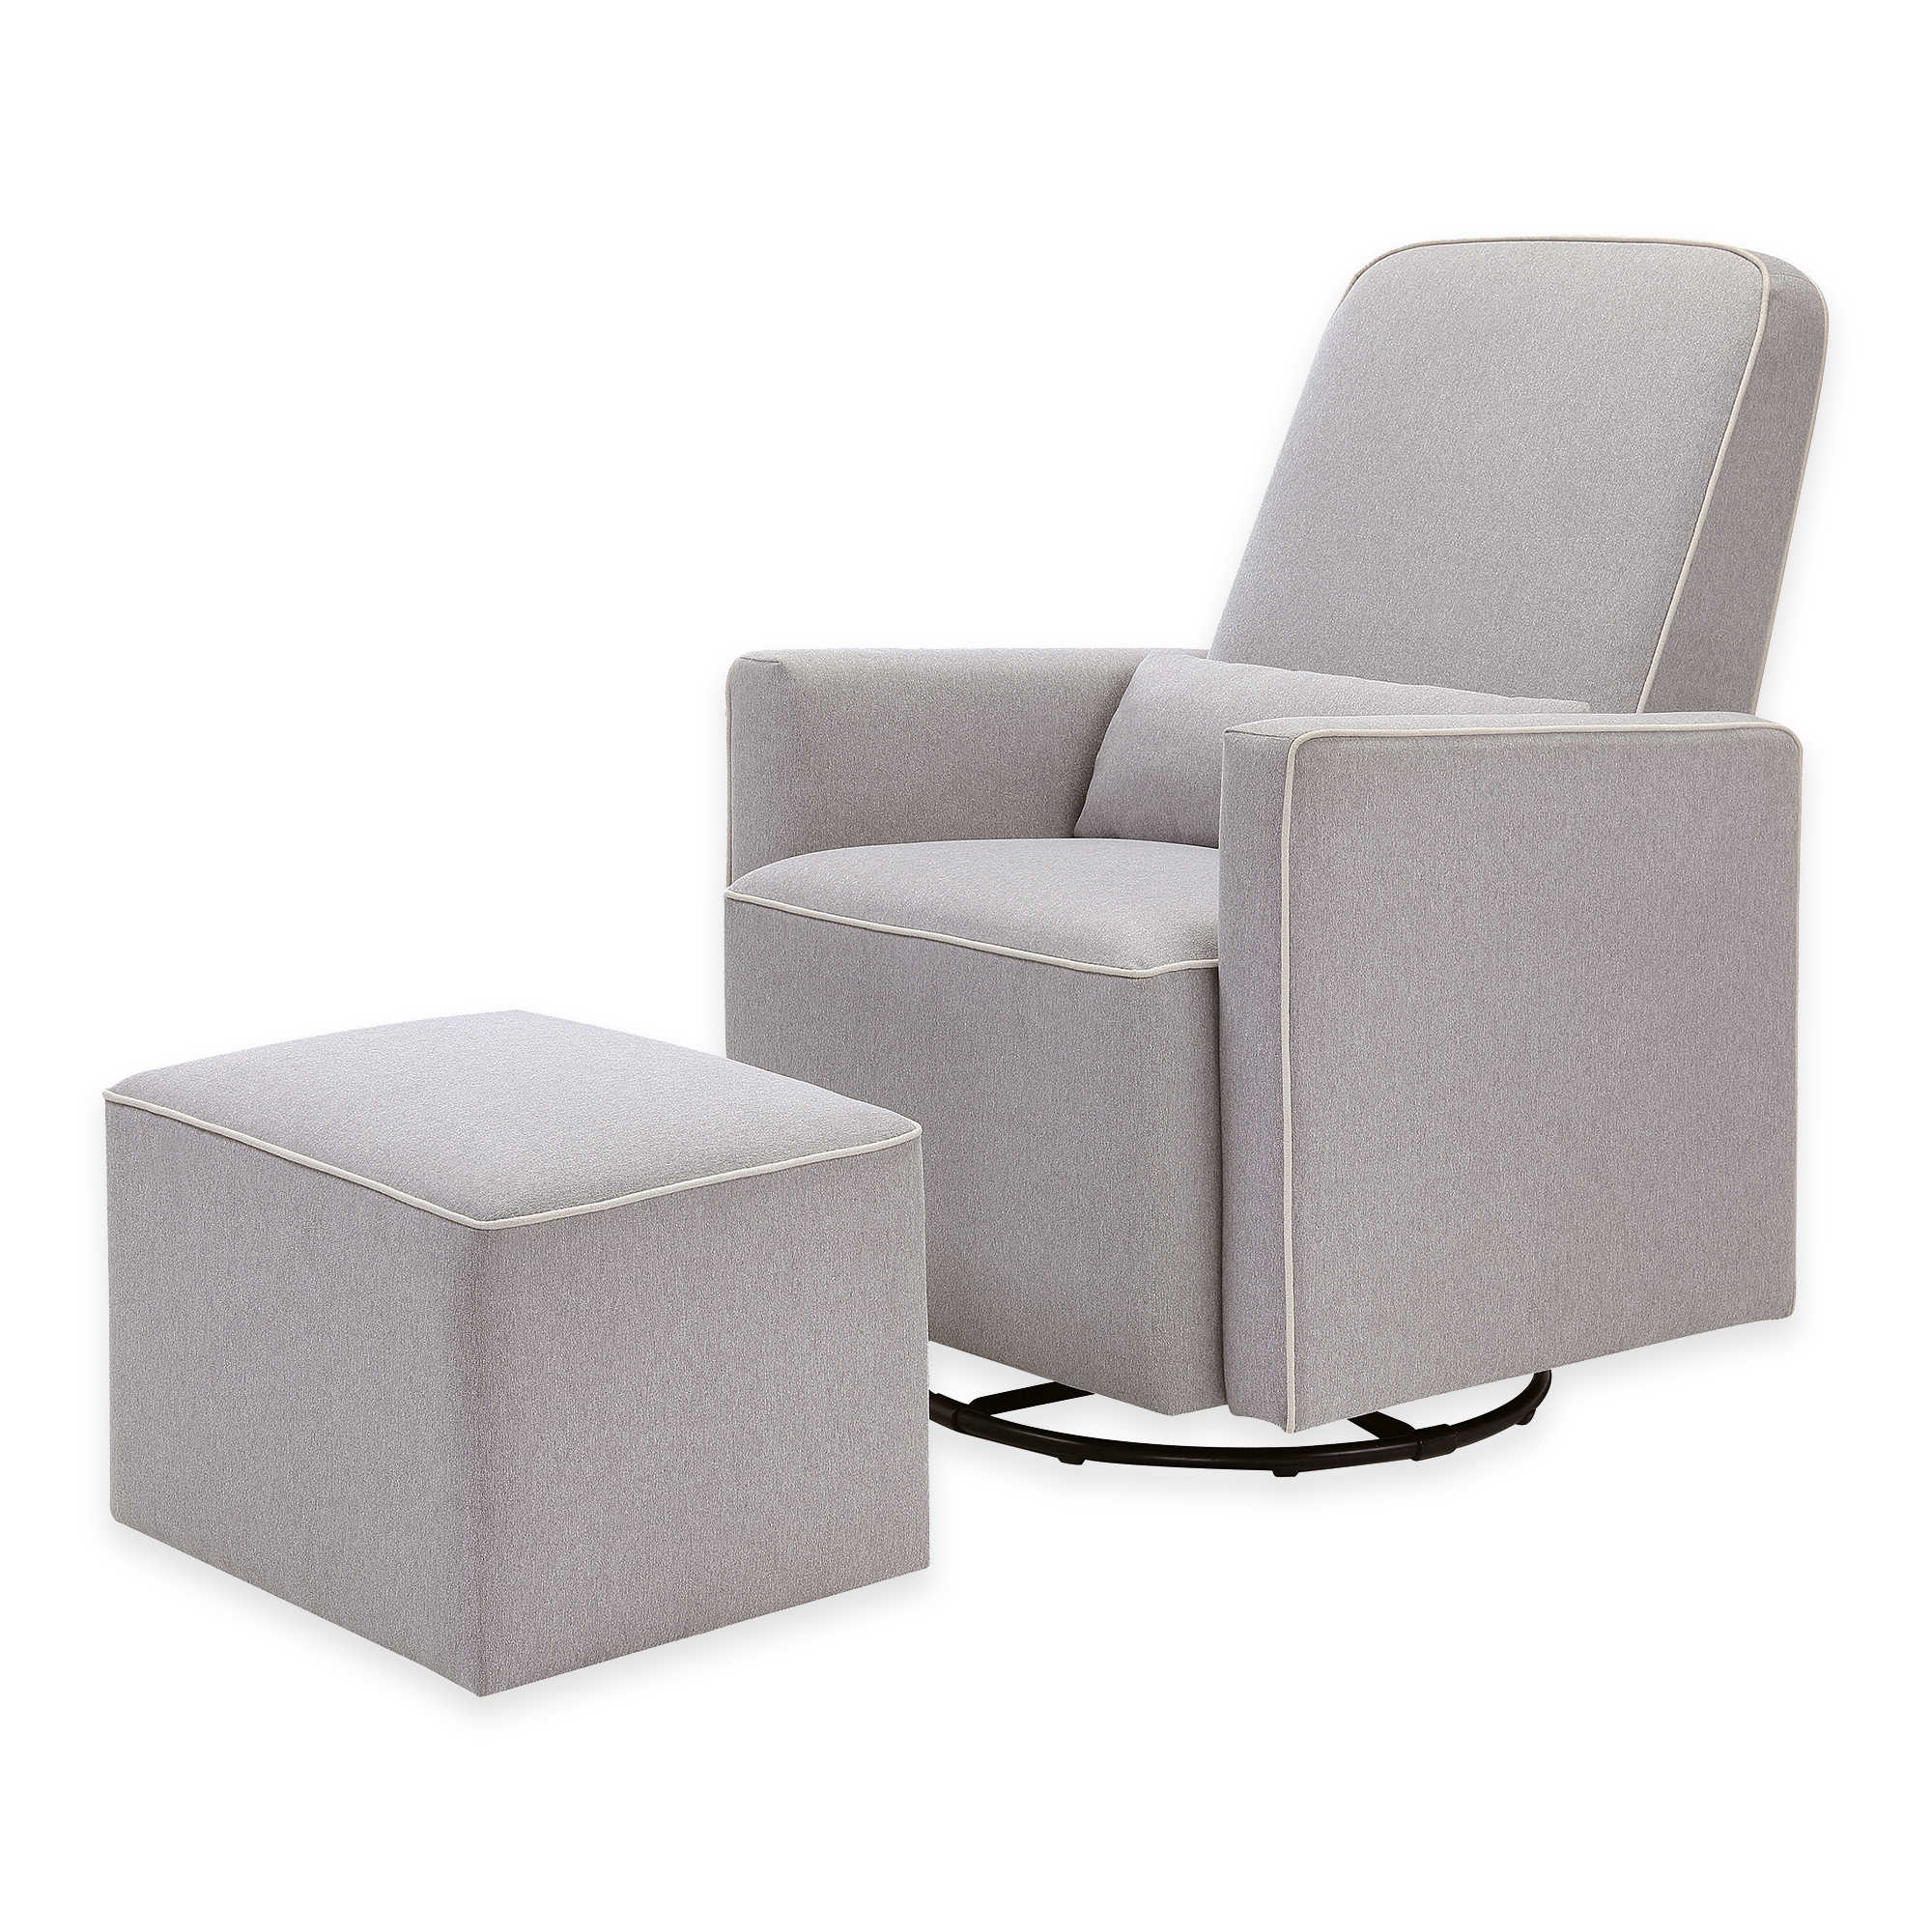 Davinci furniture perancis furniture standing clock mirror contact us - Davinci Olive Upholstered Swivel Glider And Ottoman In Grey With Cream Piping